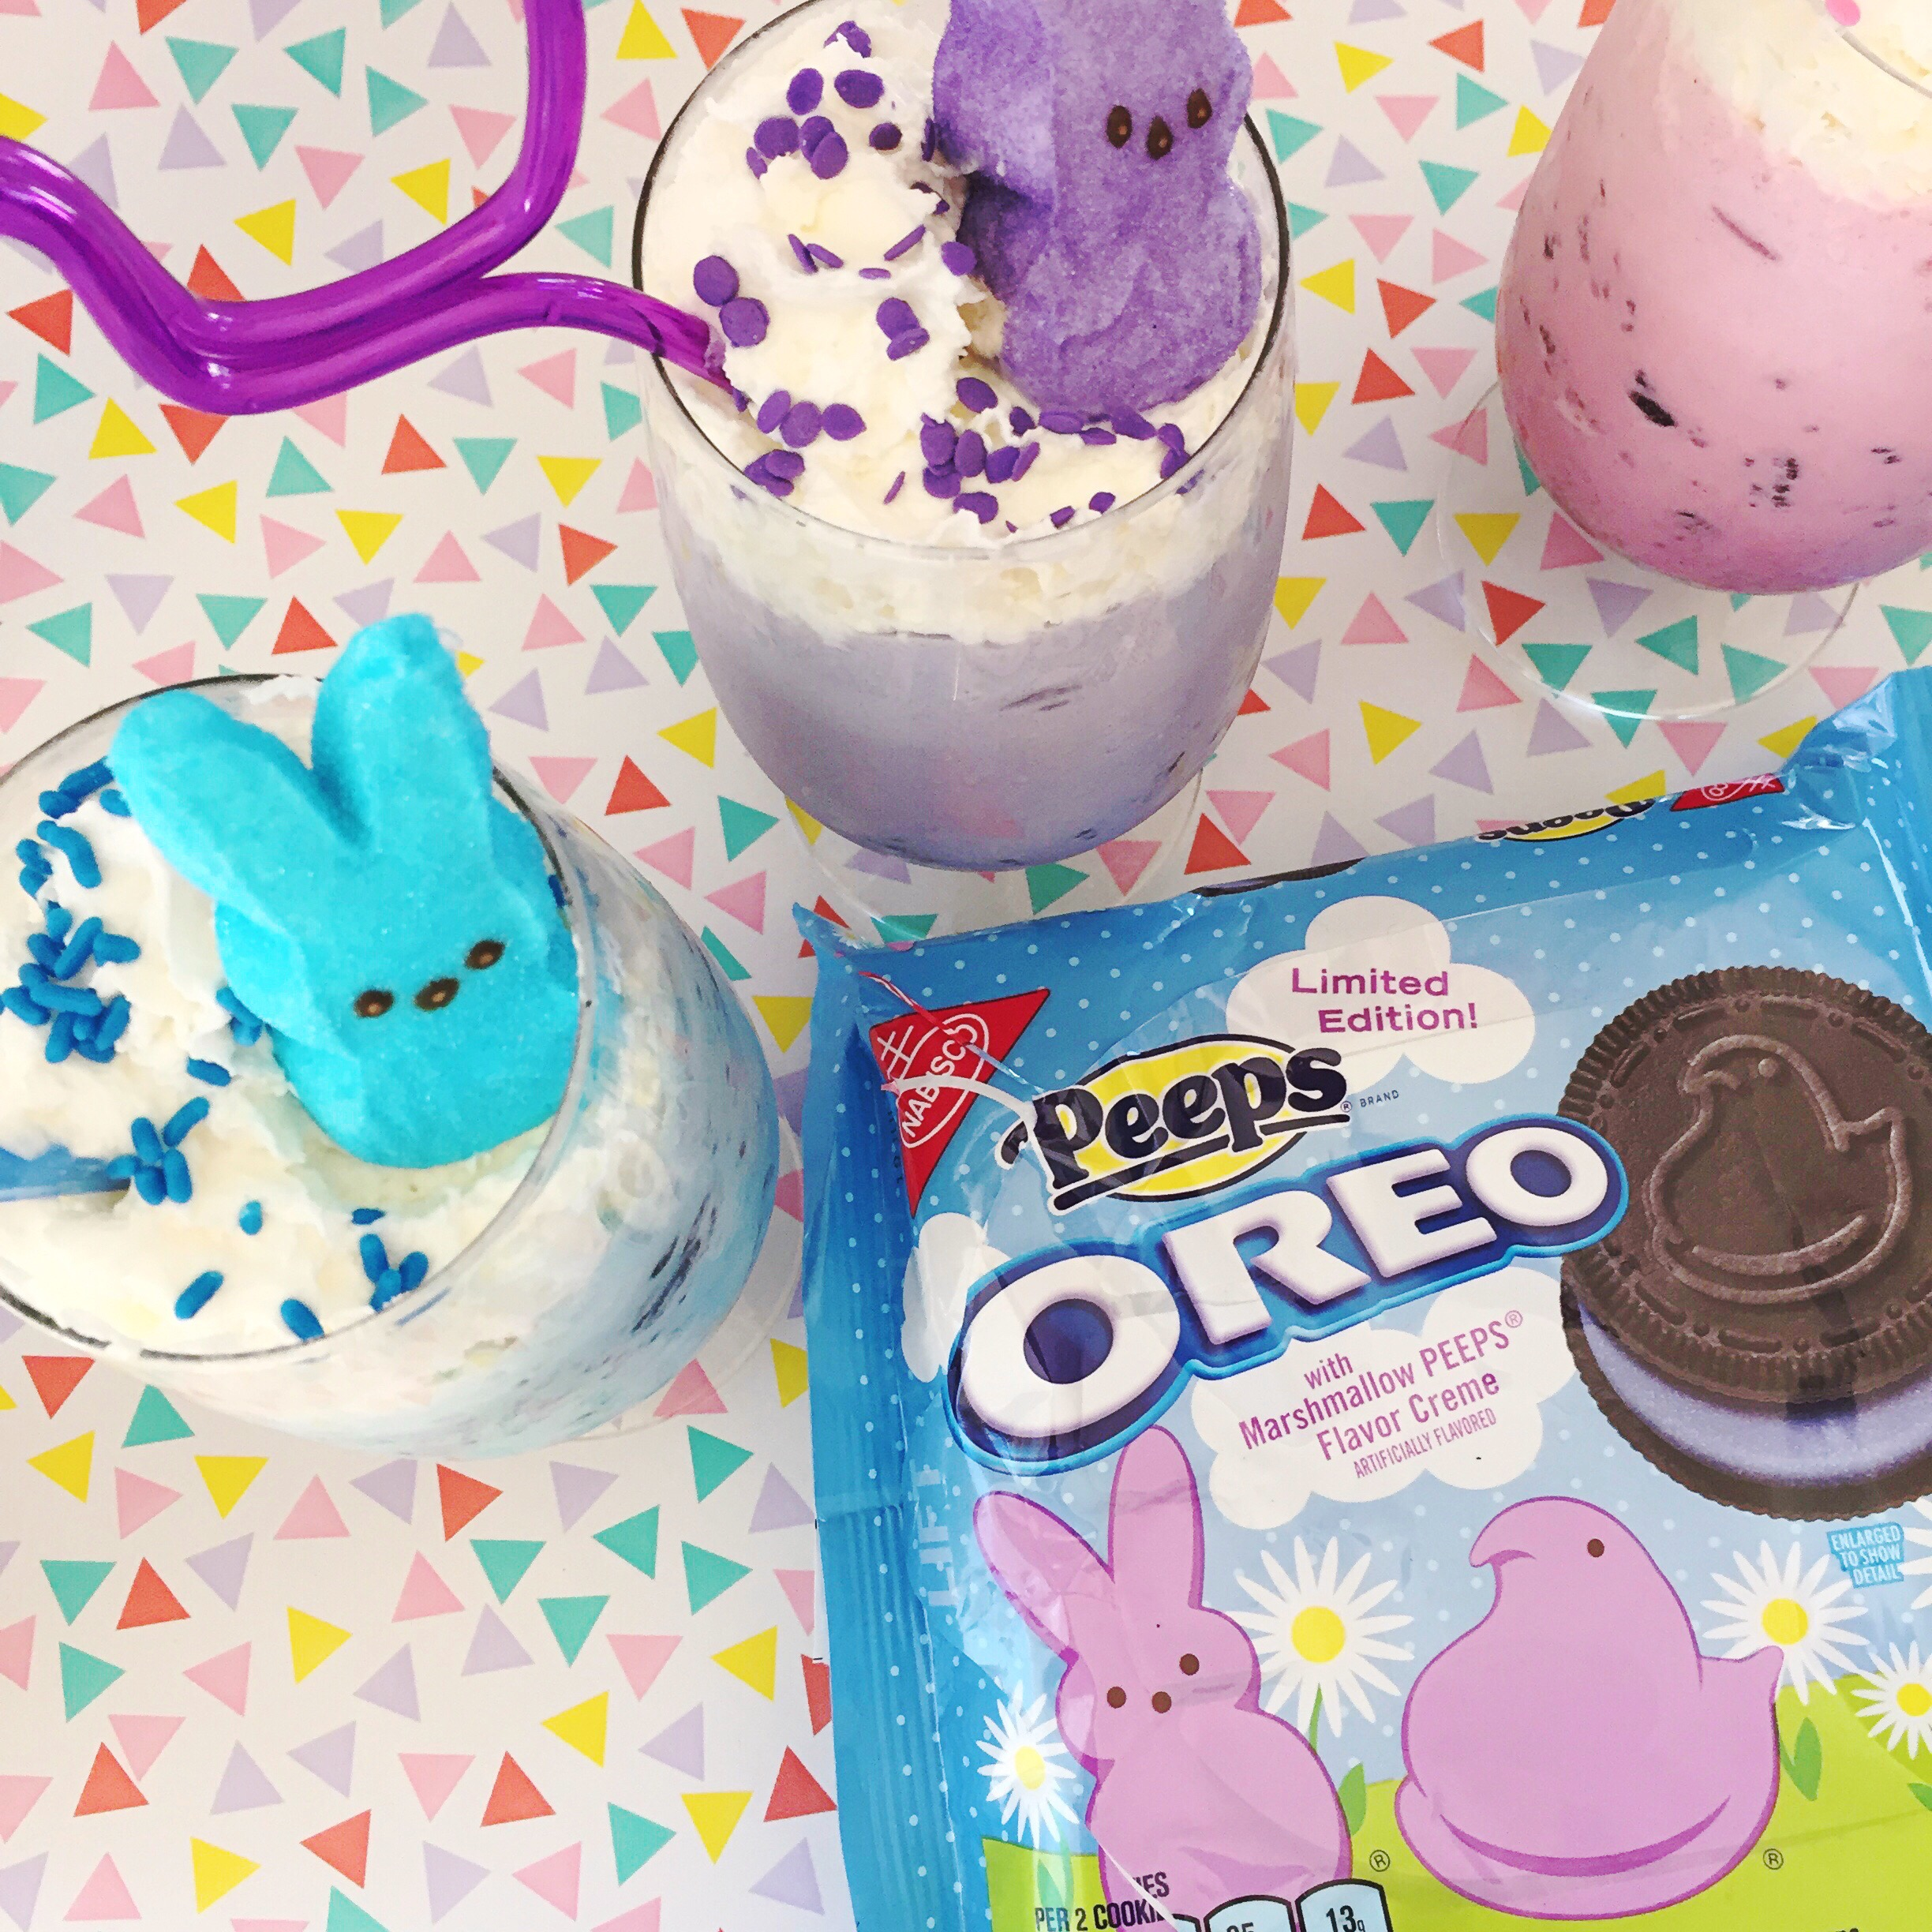 Peeps_Oreos_Easter_Shakes_Design Organize Party.jpg